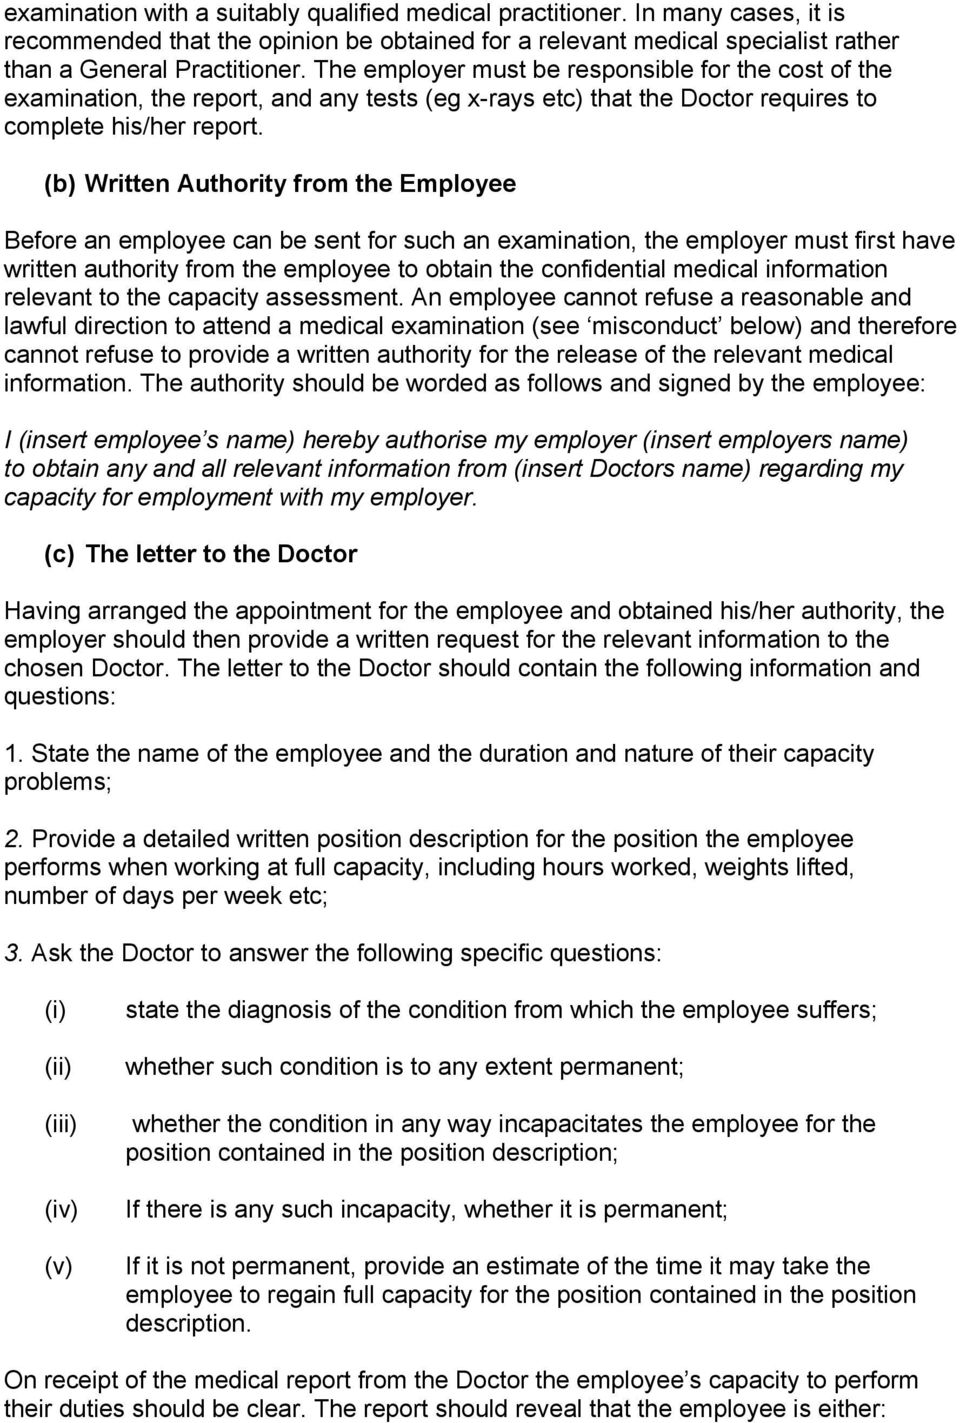 (b) Written Authority from the Employee Before an employee can be sent for such an examination, the employer must first have written authority from the employee to obtain the confidential medical